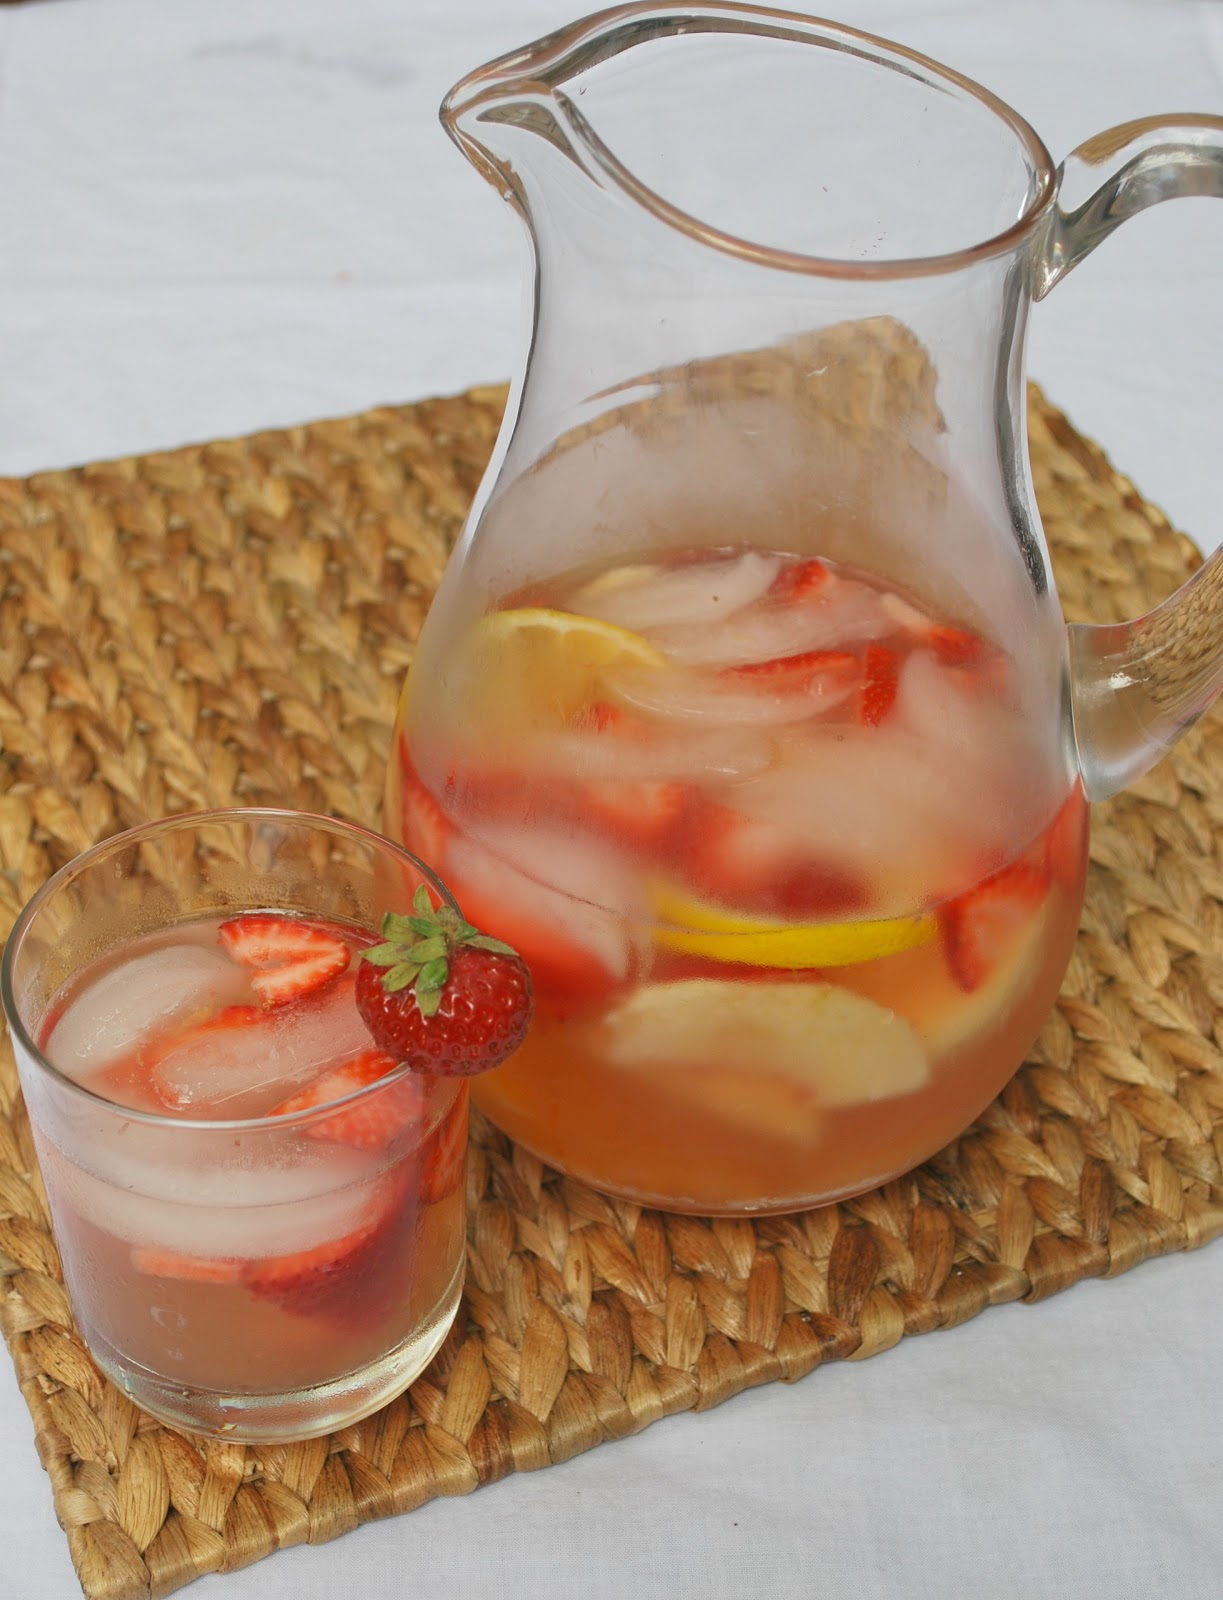 Cheese Please: Sparkling Peach Sangria with Strawberry Simple Syrup